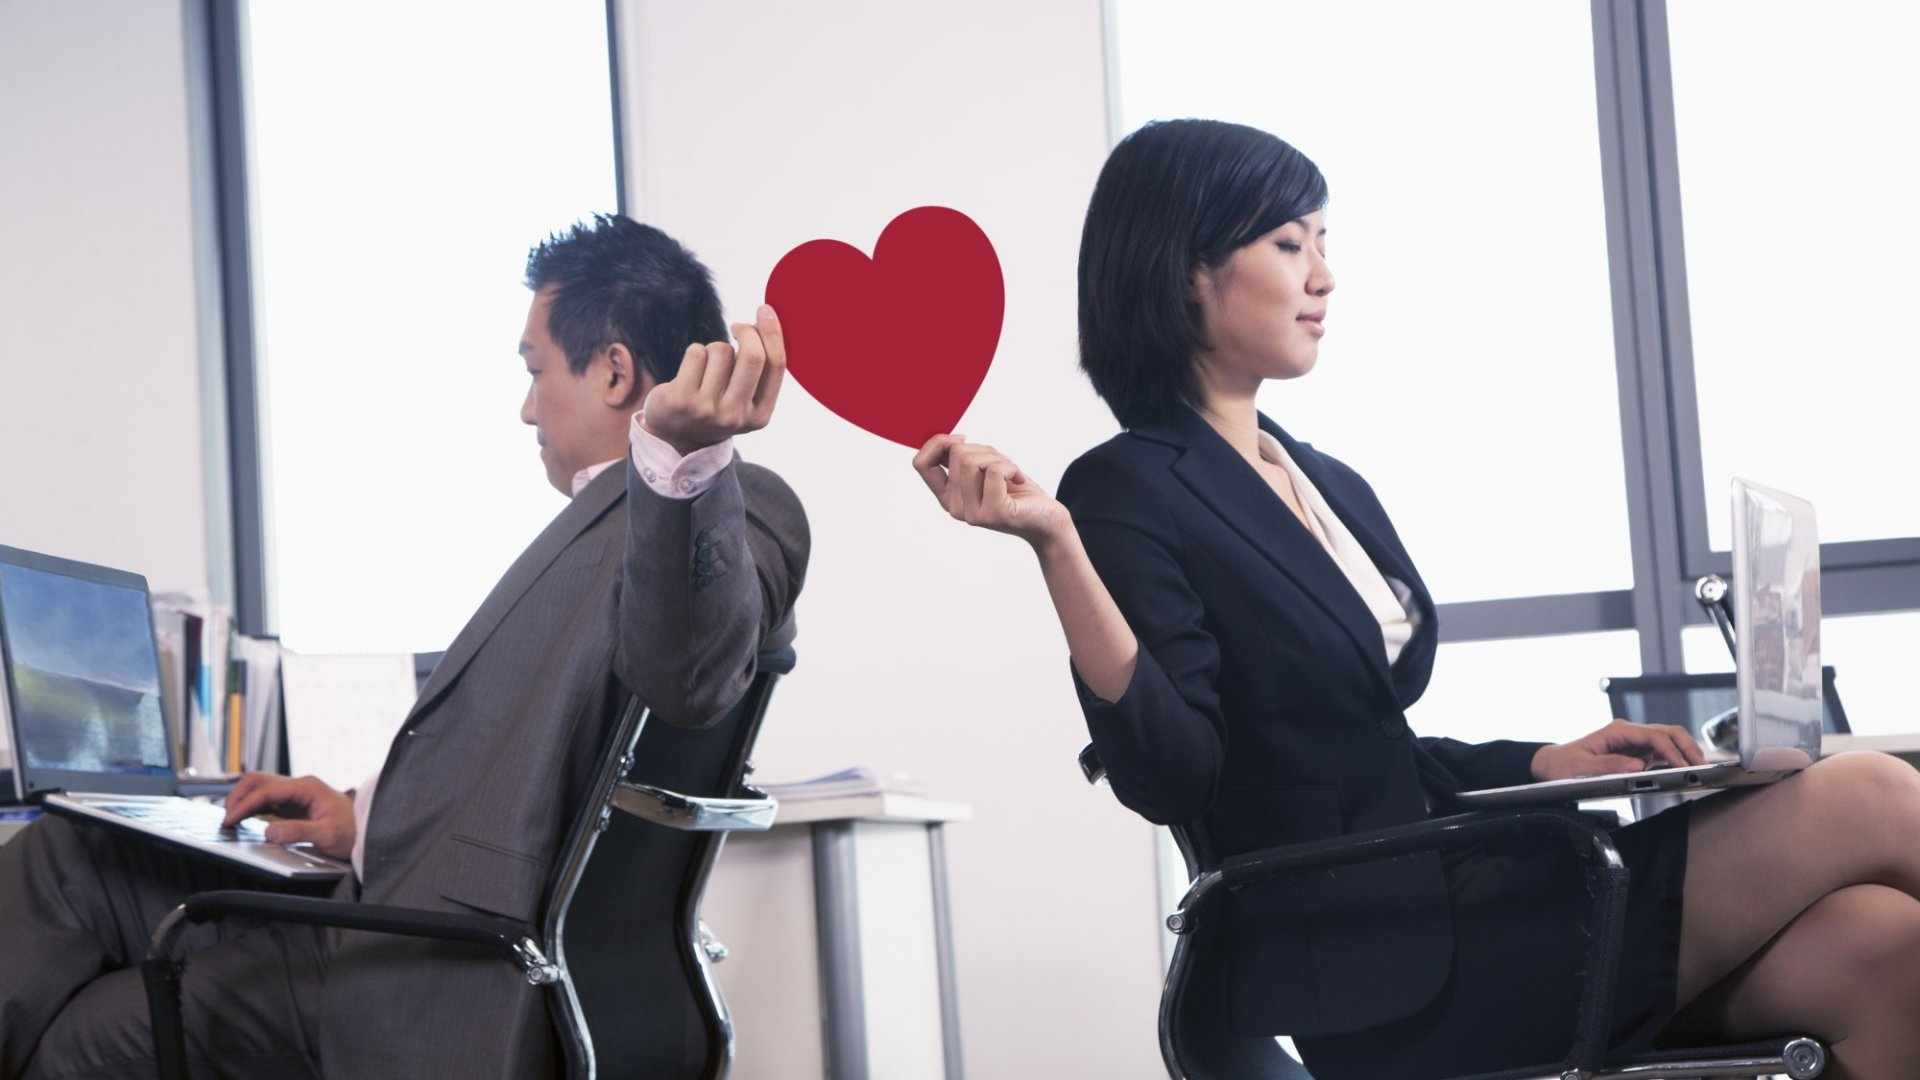 Ever Had a Crush on a Co-Worker? 31 Percent of People Who Meet at Work End Up Getting Married